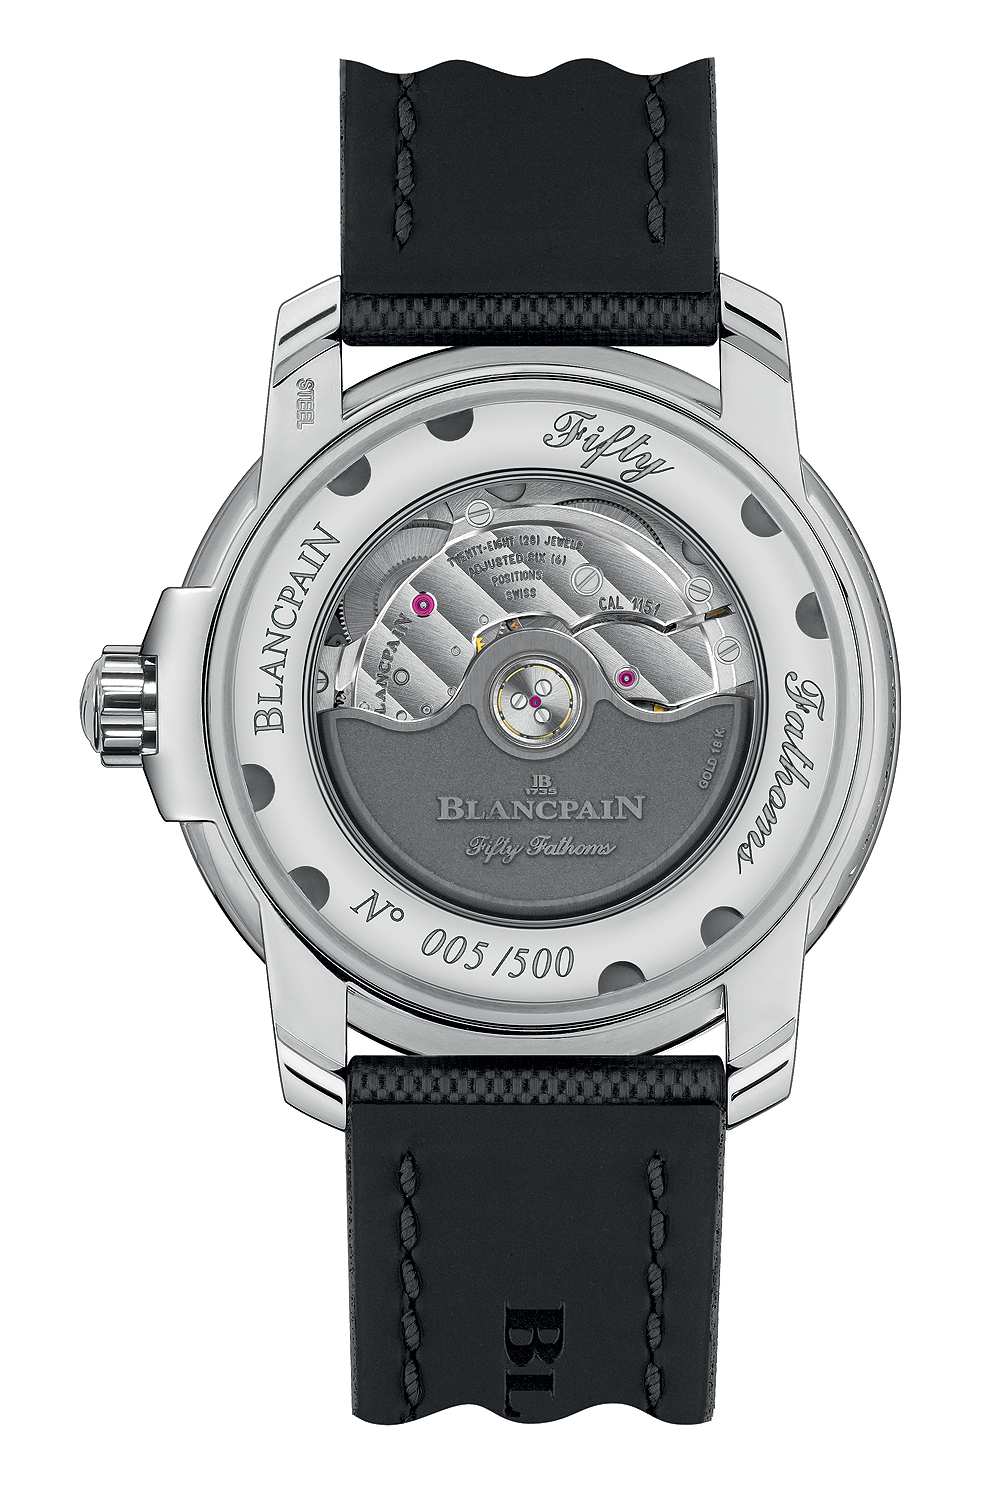 Blancpain Tribute to Fifty Fathoms Mil-Spec - back